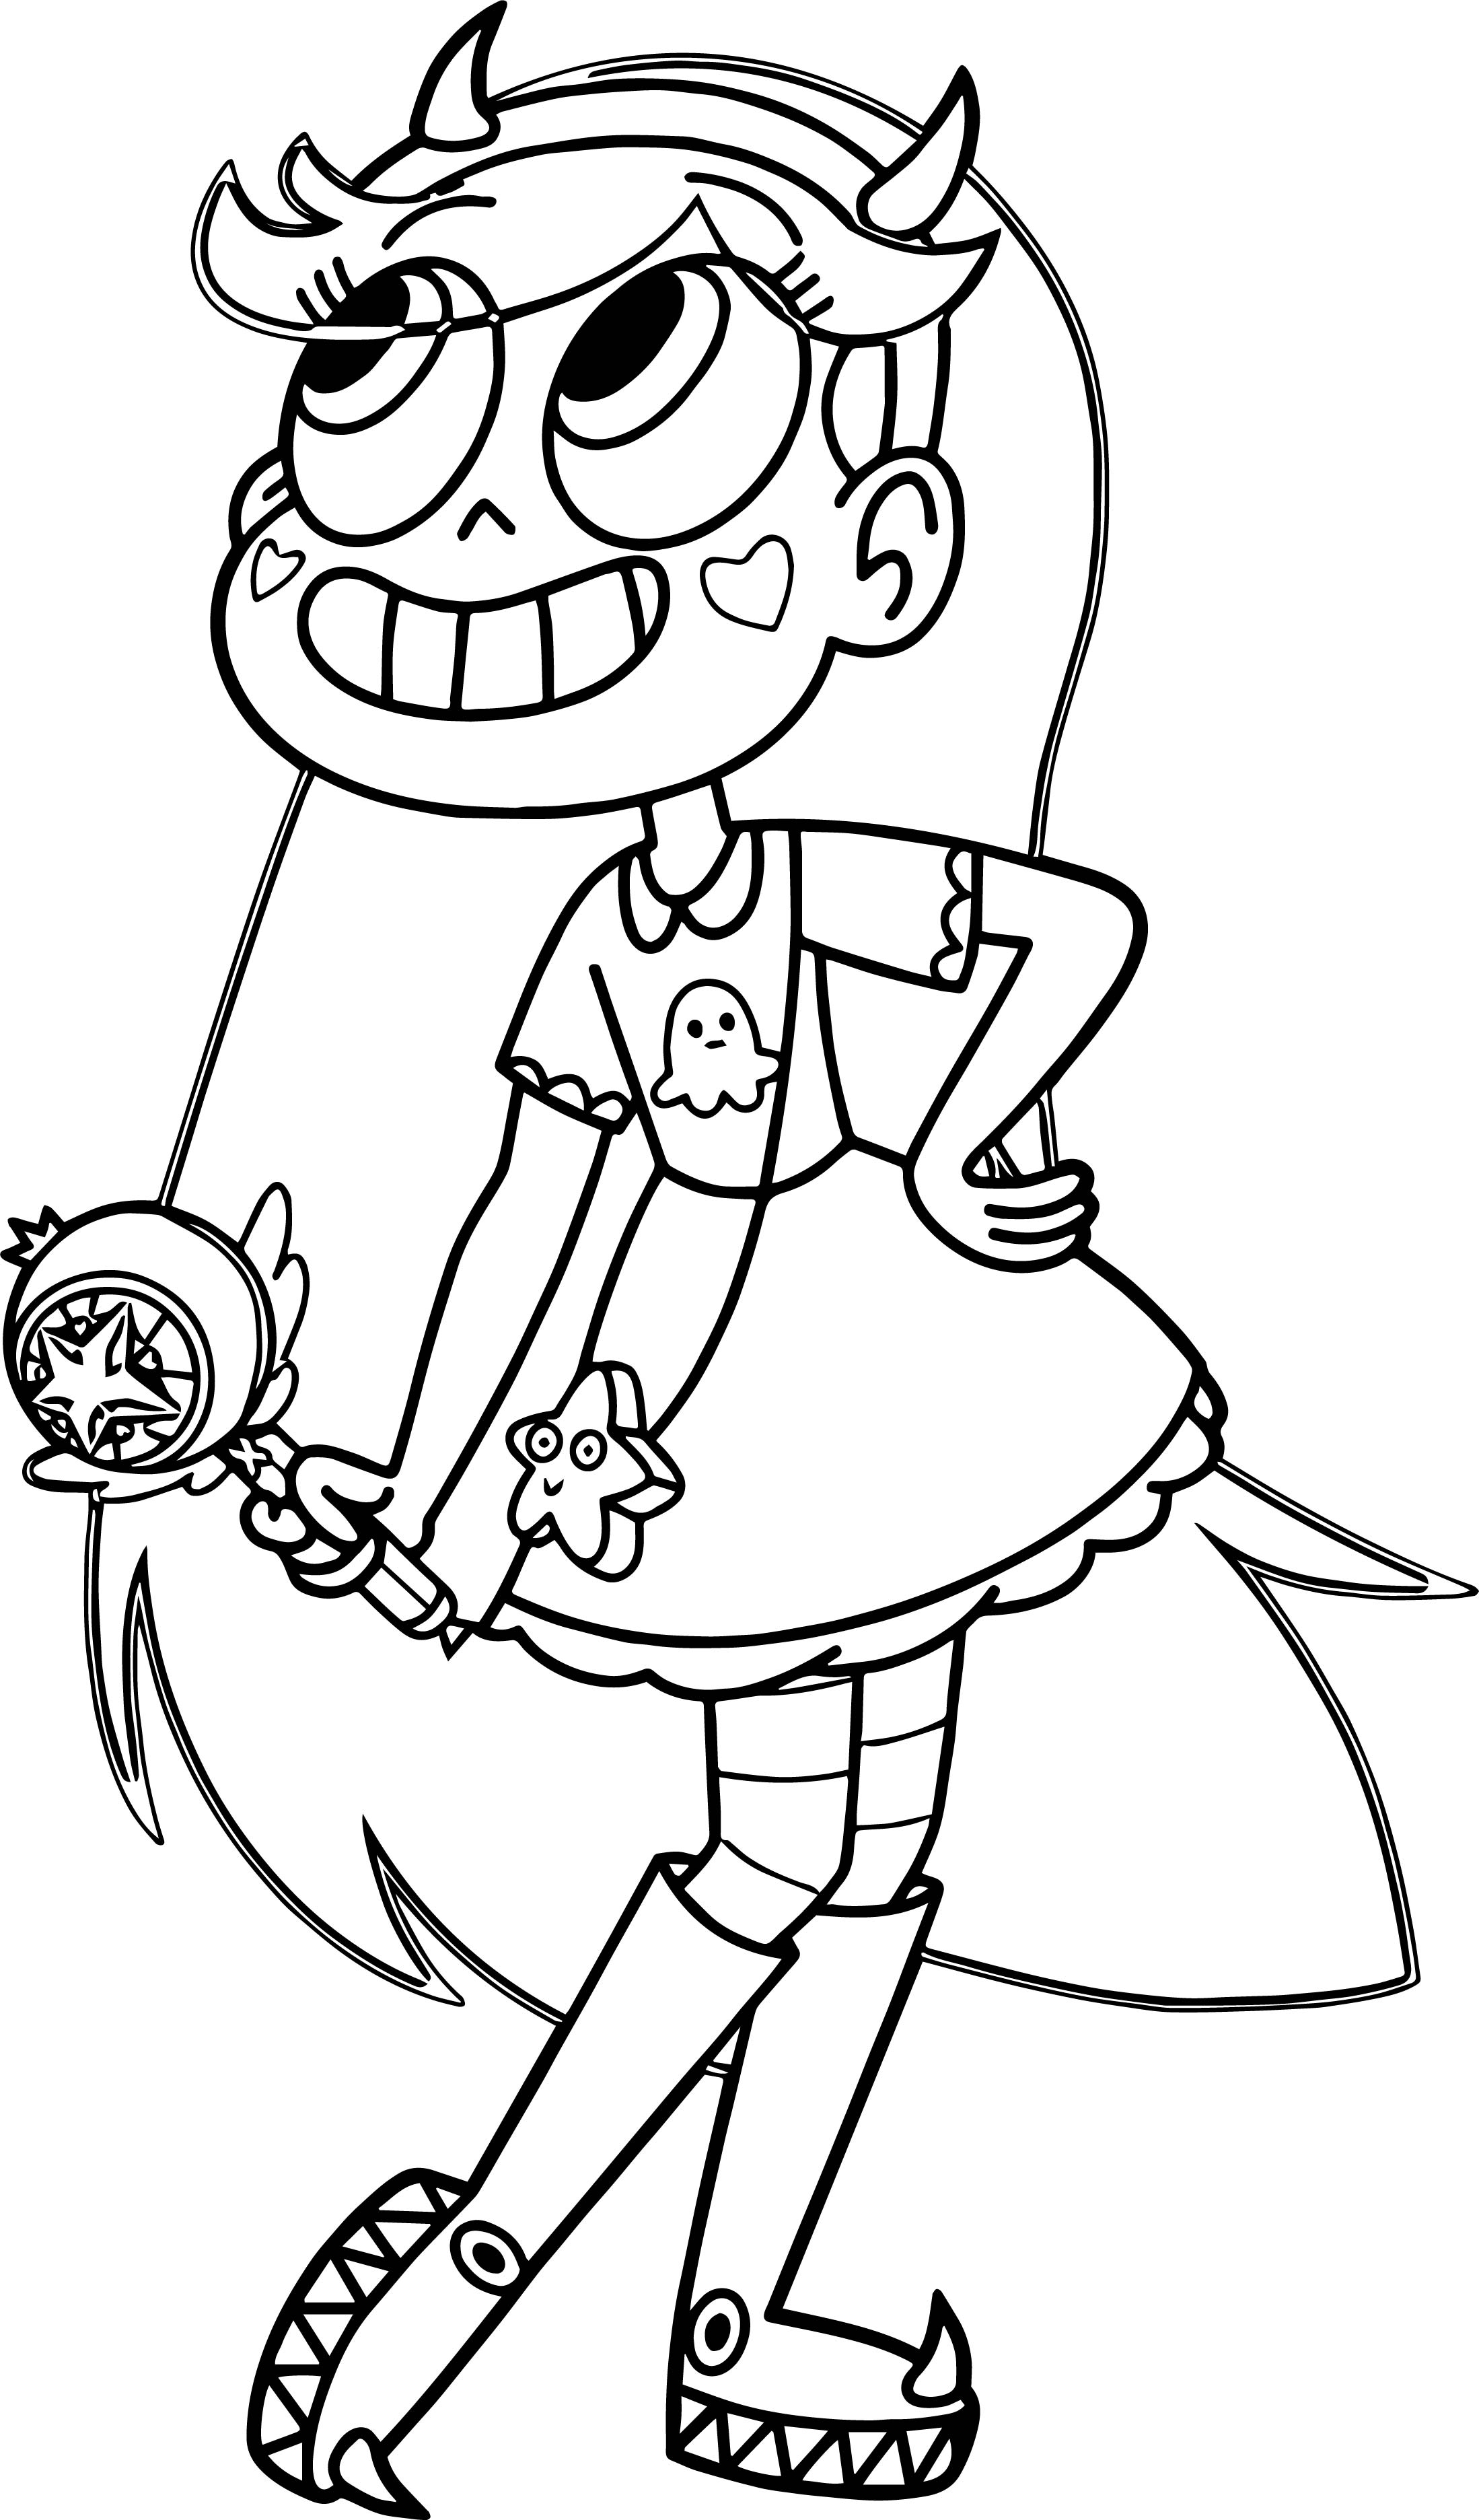 Regular Princess Coloring Pages : Star vs the forces of evil coloring pages printable